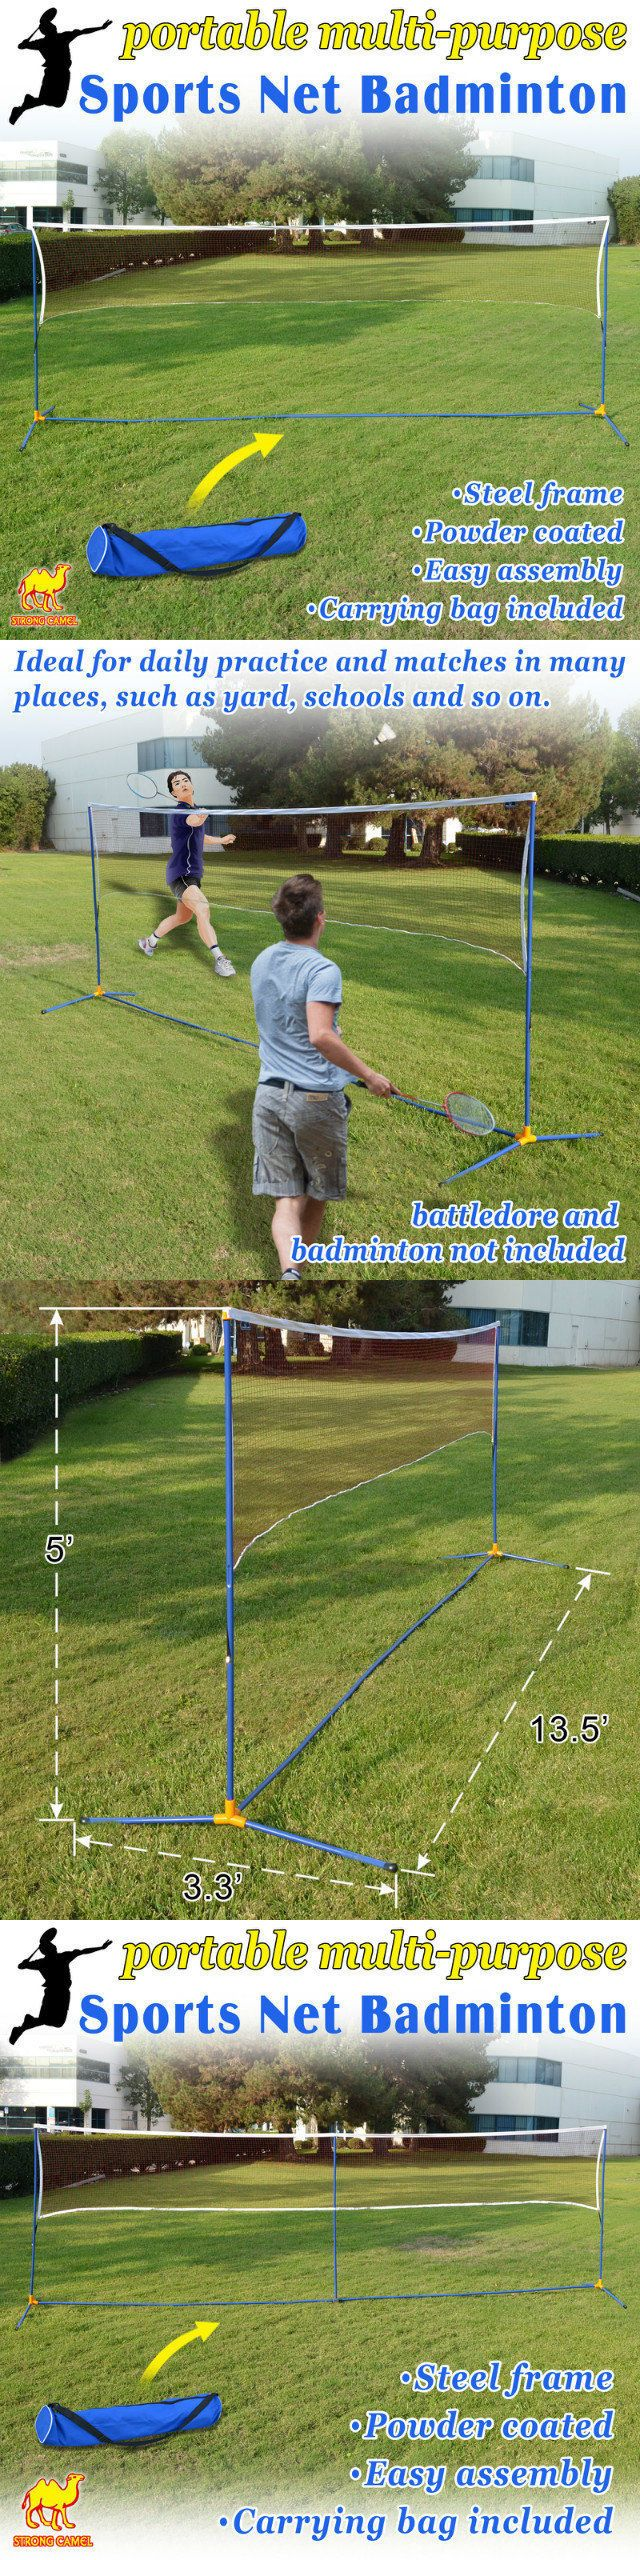 Badminton 106460: Portable 3-In-1Training Beach Volleyball Badminton Tennis Net Set With Carrying -> BUY IT NOW ONLY: $44.0 on eBay!